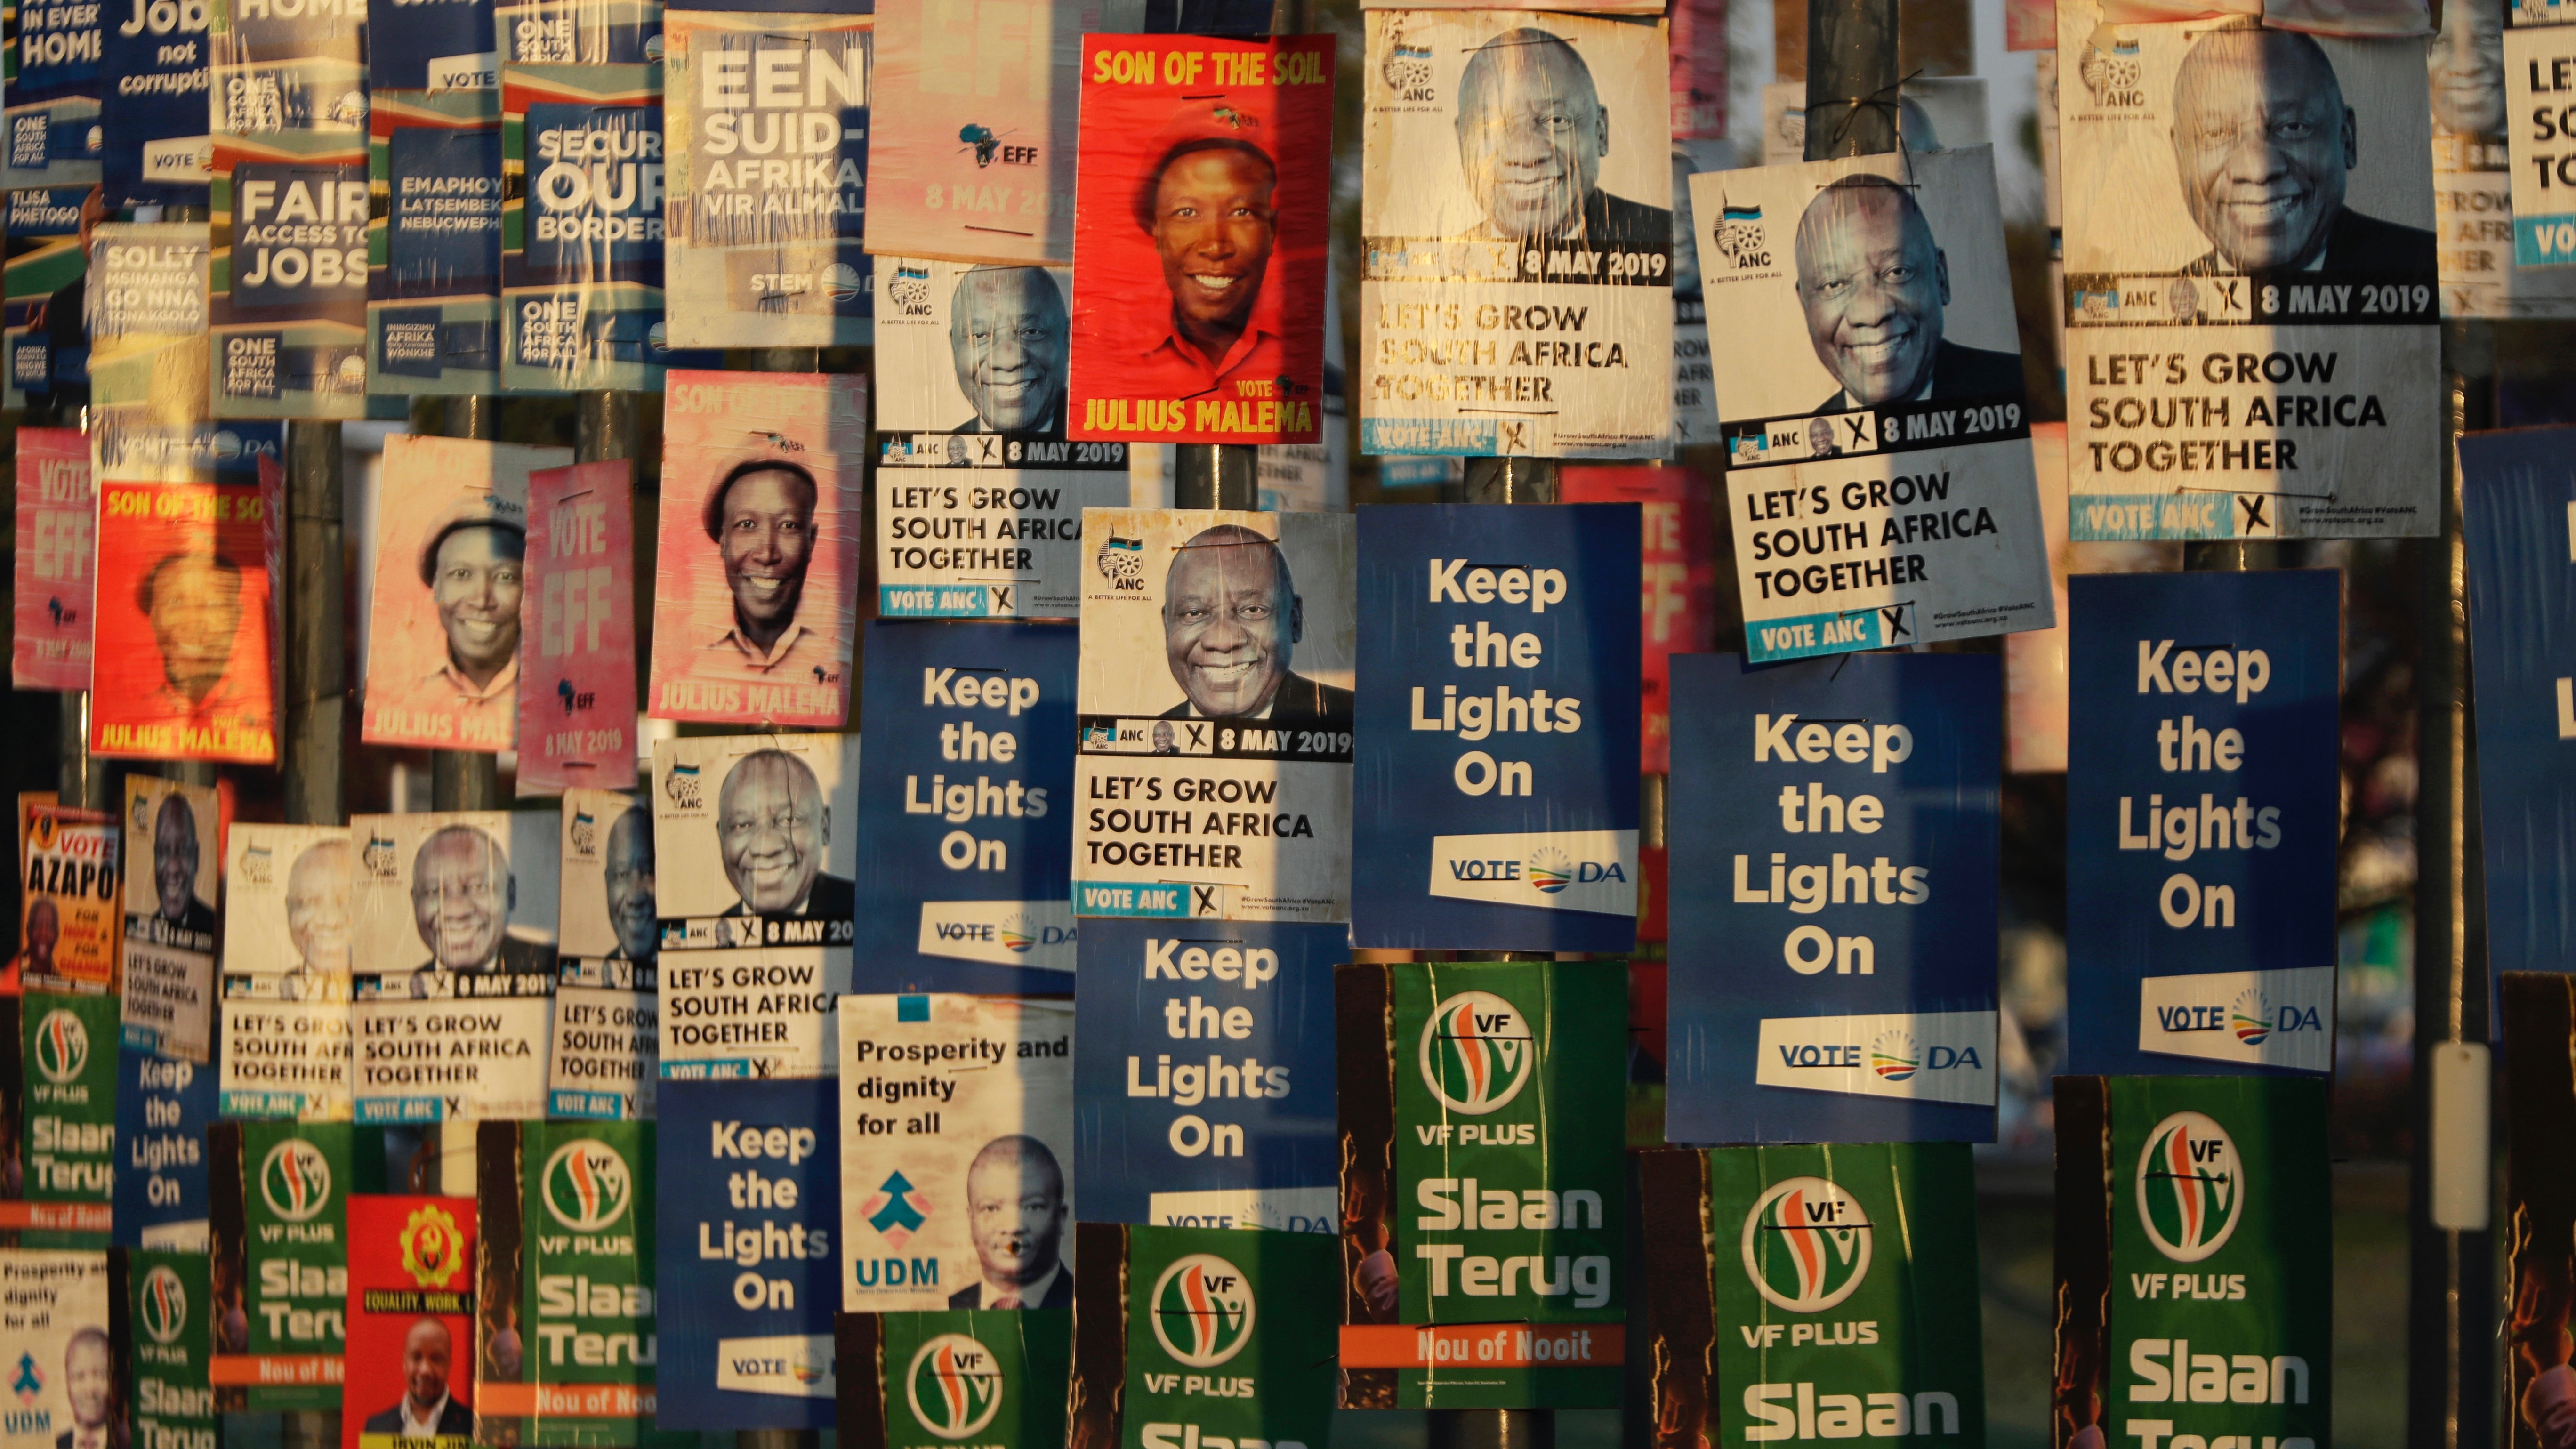 South Africa election result: right wing, left wing parties gain